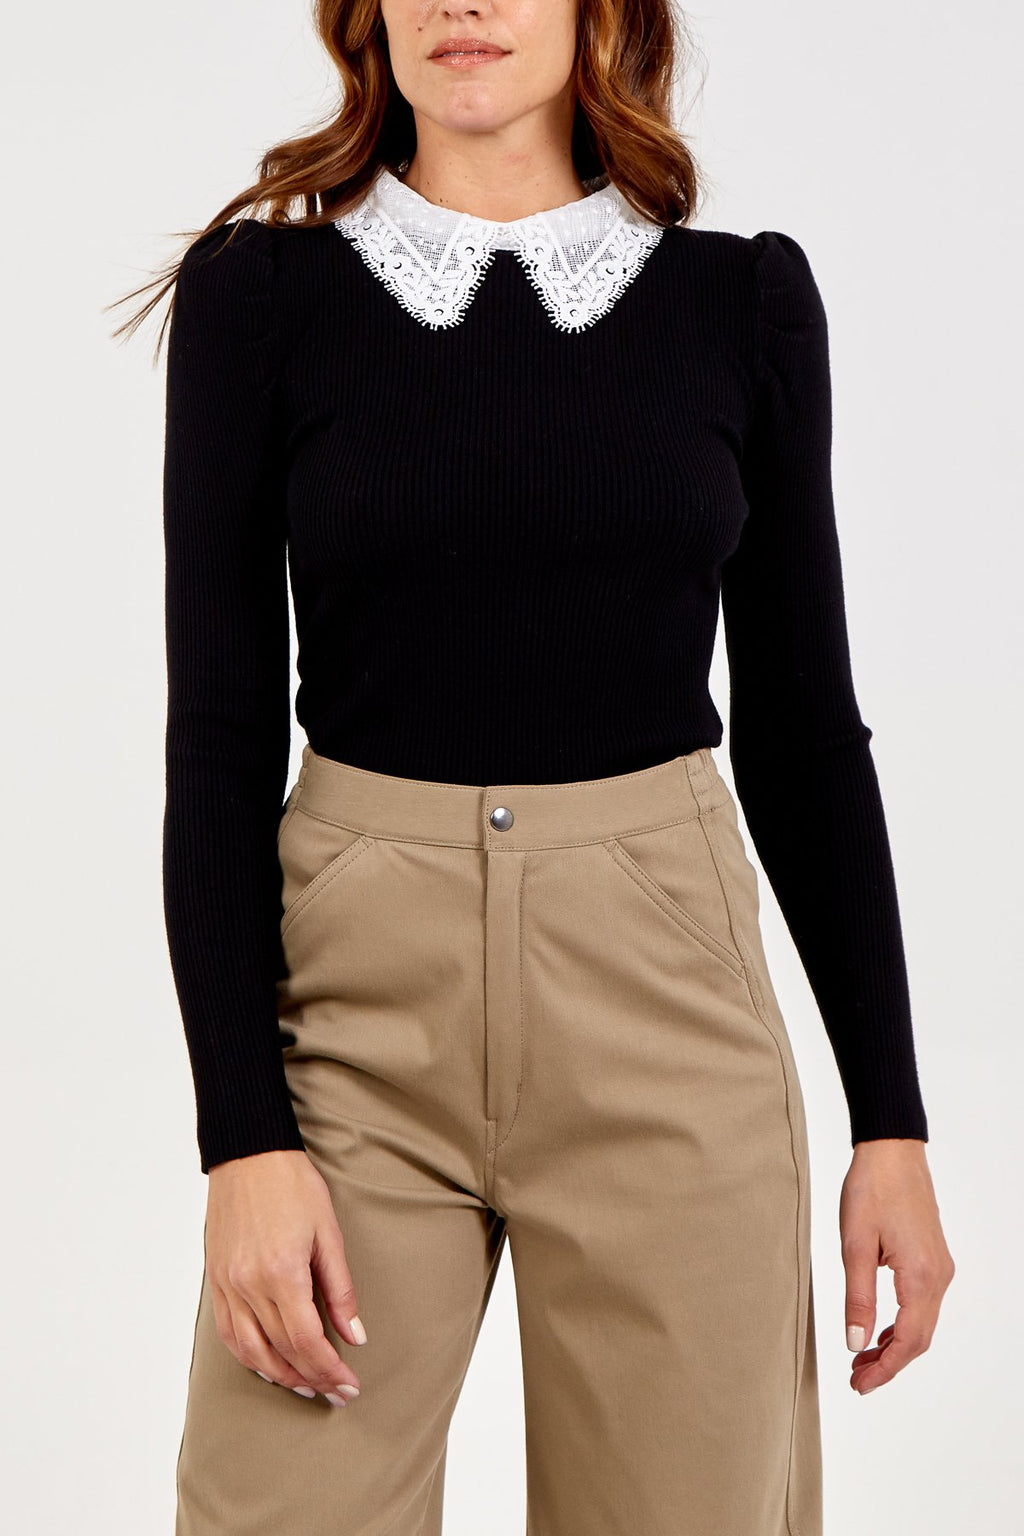 Black Soft Knitted Jumper with Lace Collar